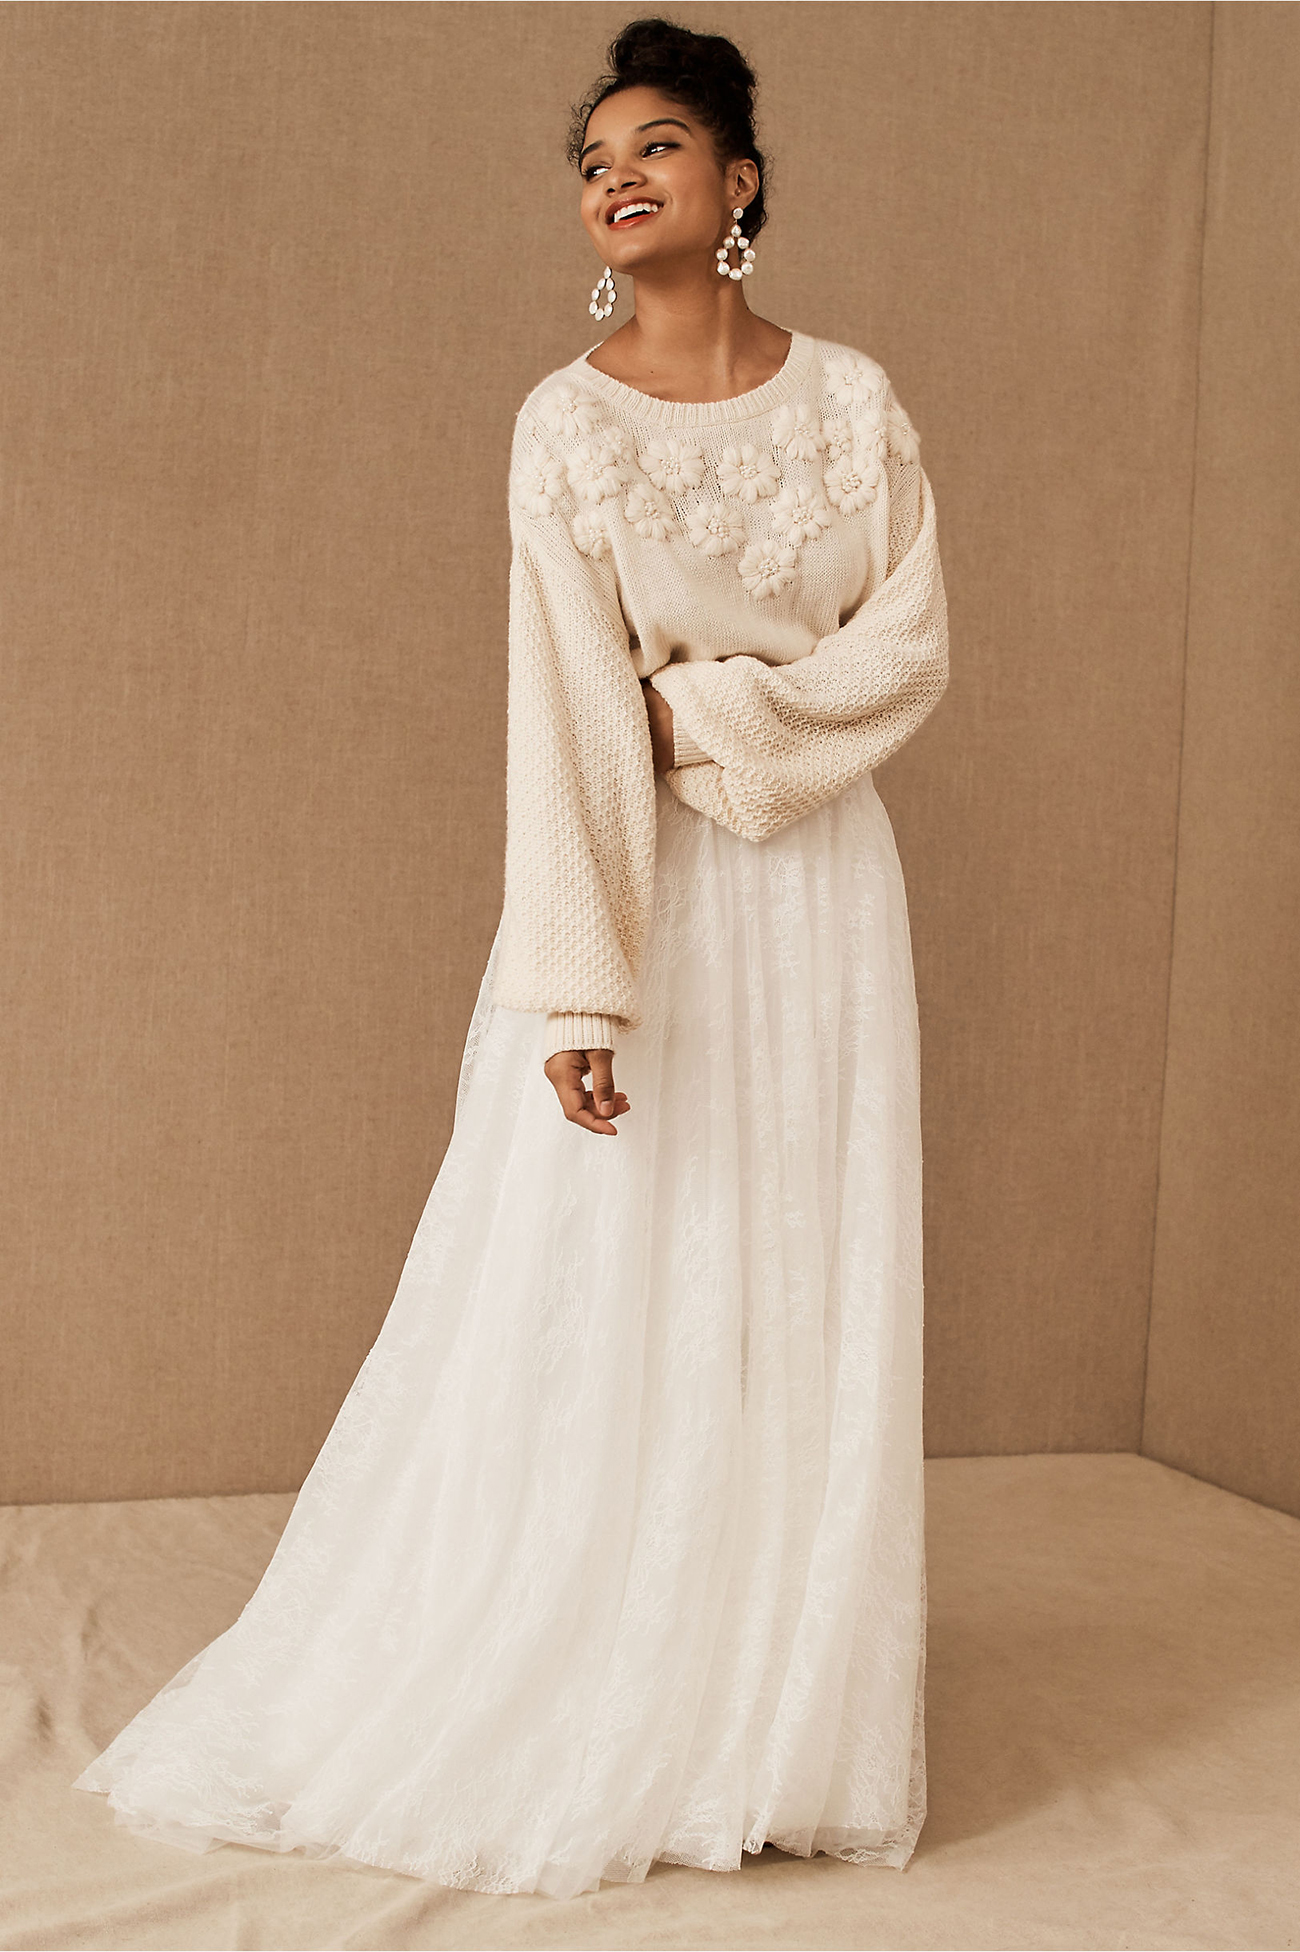 Bridal sweater and skirt